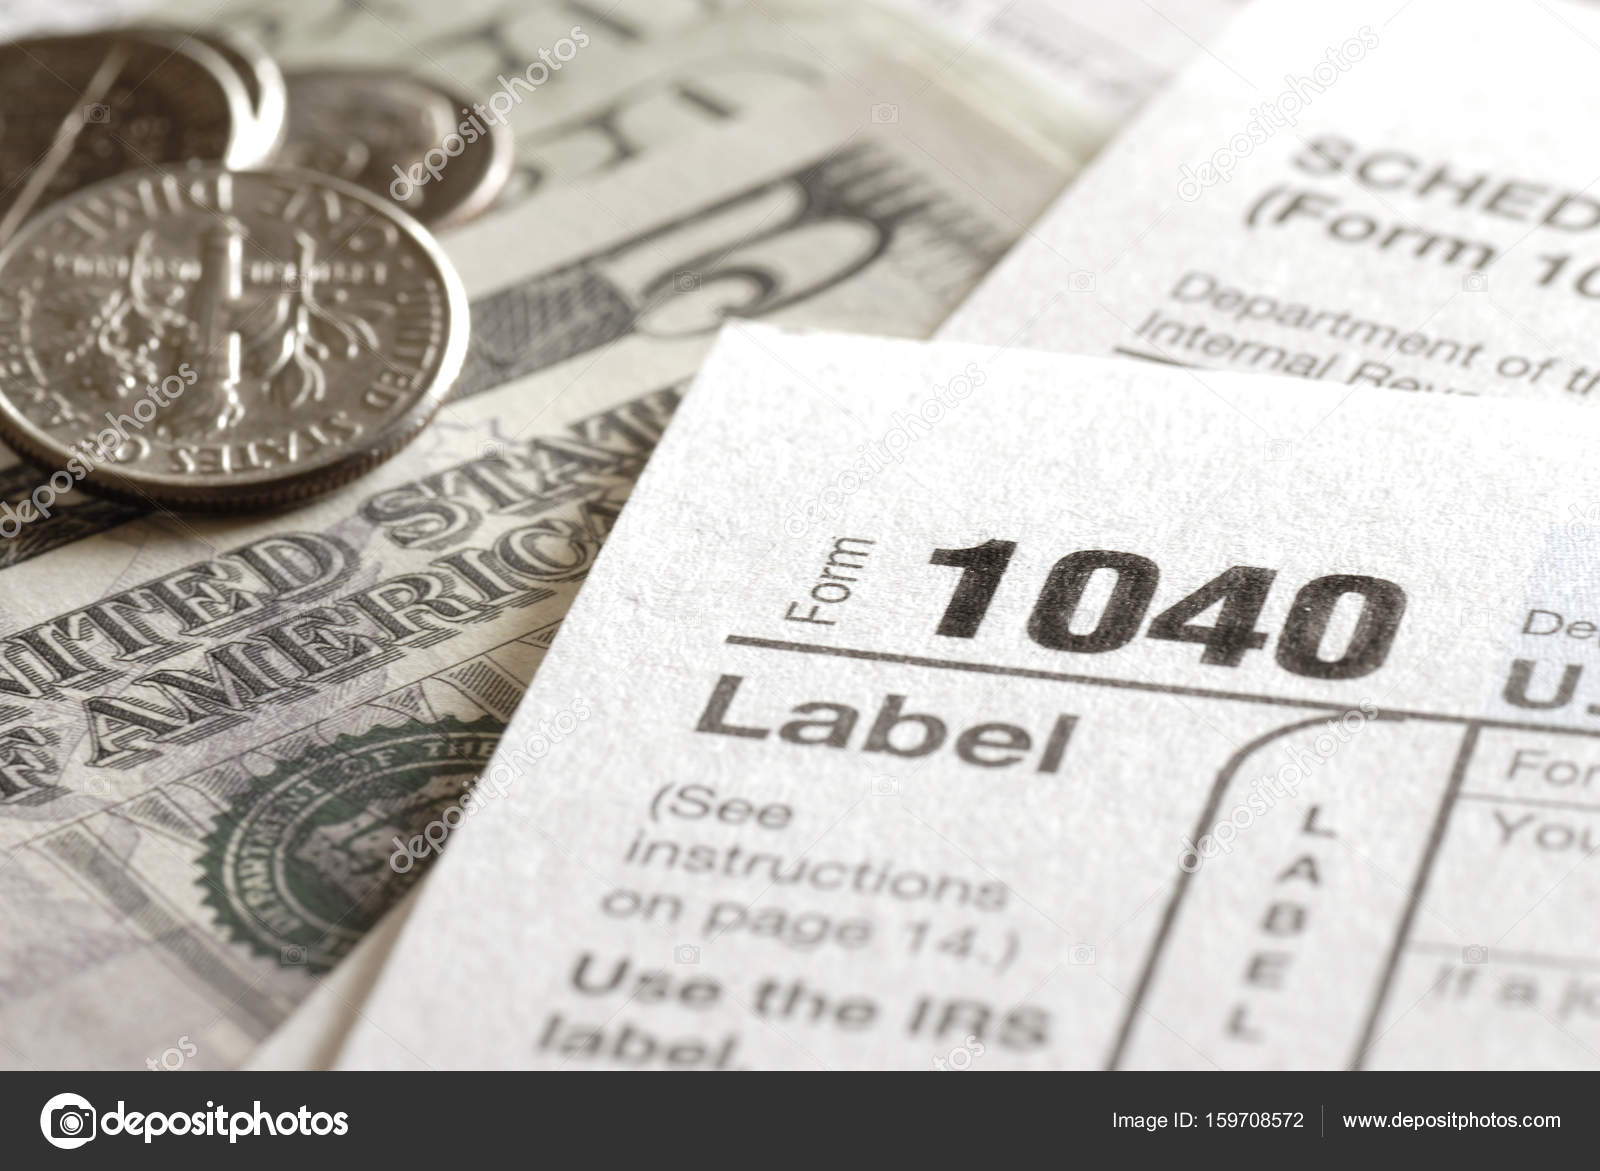 Tax forms 1040 for irs stock photo eric1513 159708572 tax forms for the irs income 1040 form photo by eric1513 falaconquin